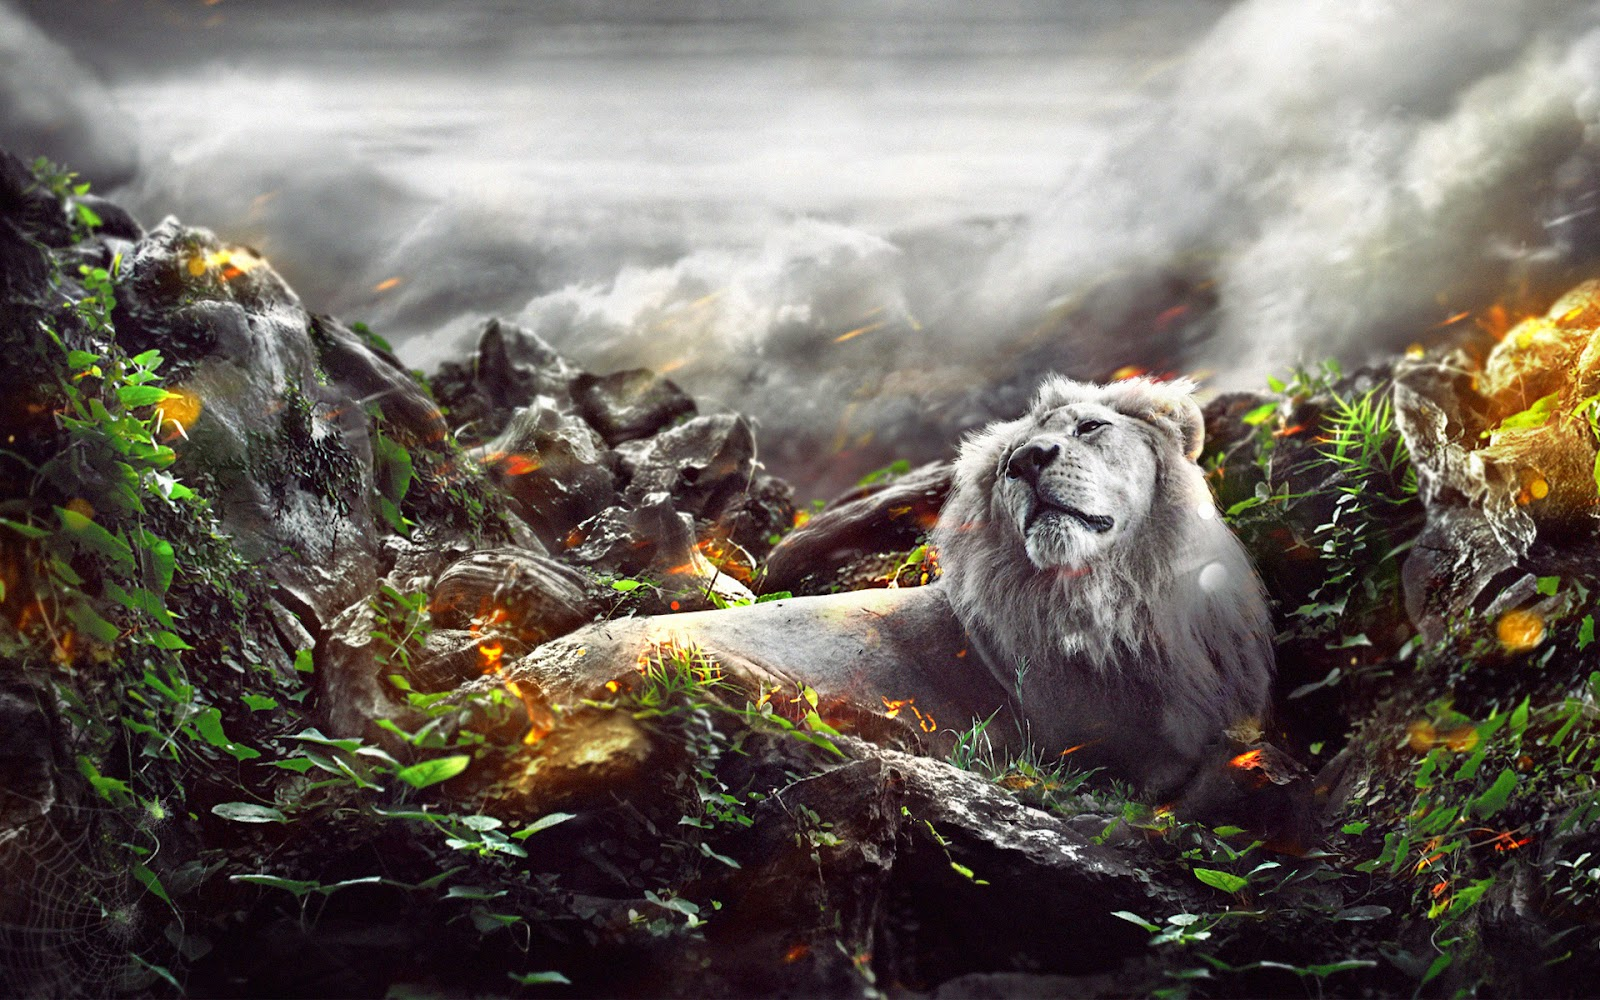 Best Wallpaper Lion Facebook - Lion+in+Jungle+3D+HD+Wallpapers+images+photos+pictures+gallery  Gallery_45575.jpg